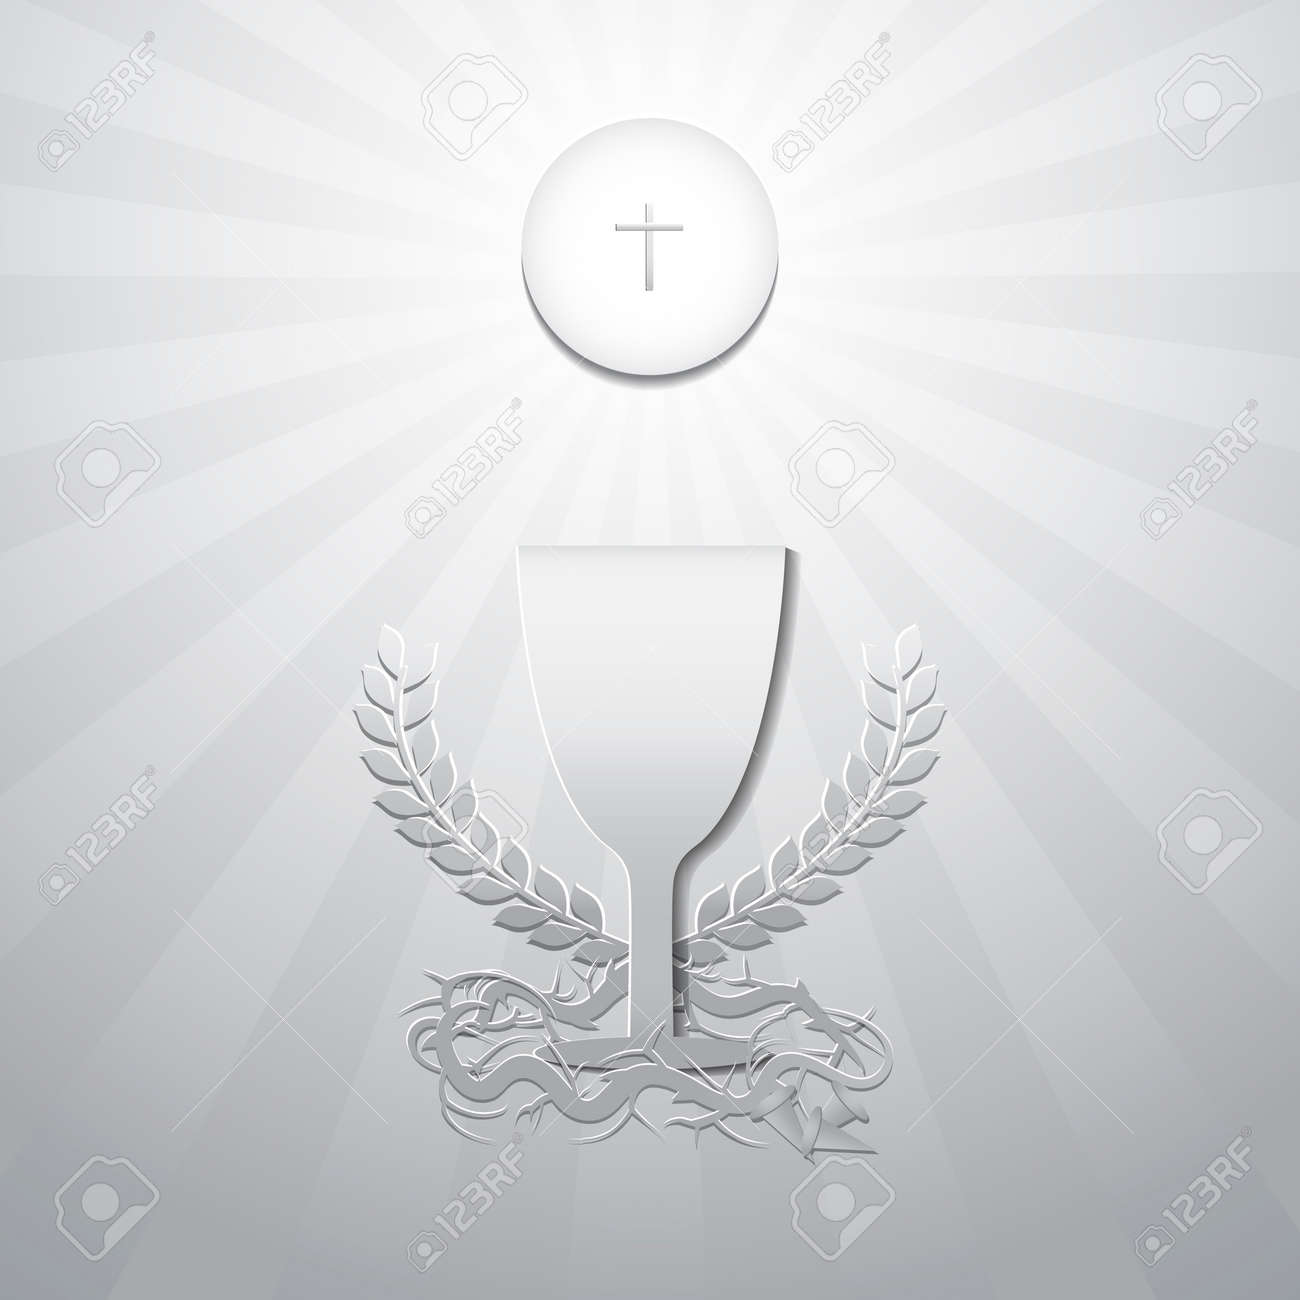 Eucharist symbols. Bread, Chalice with Crown of thorns and 3 nails. First Holy Communion on Thursday in Lent Concept. Symbols of Christianity Catholic and Christian. Design paper cut style. Vector illustration. - 70741210